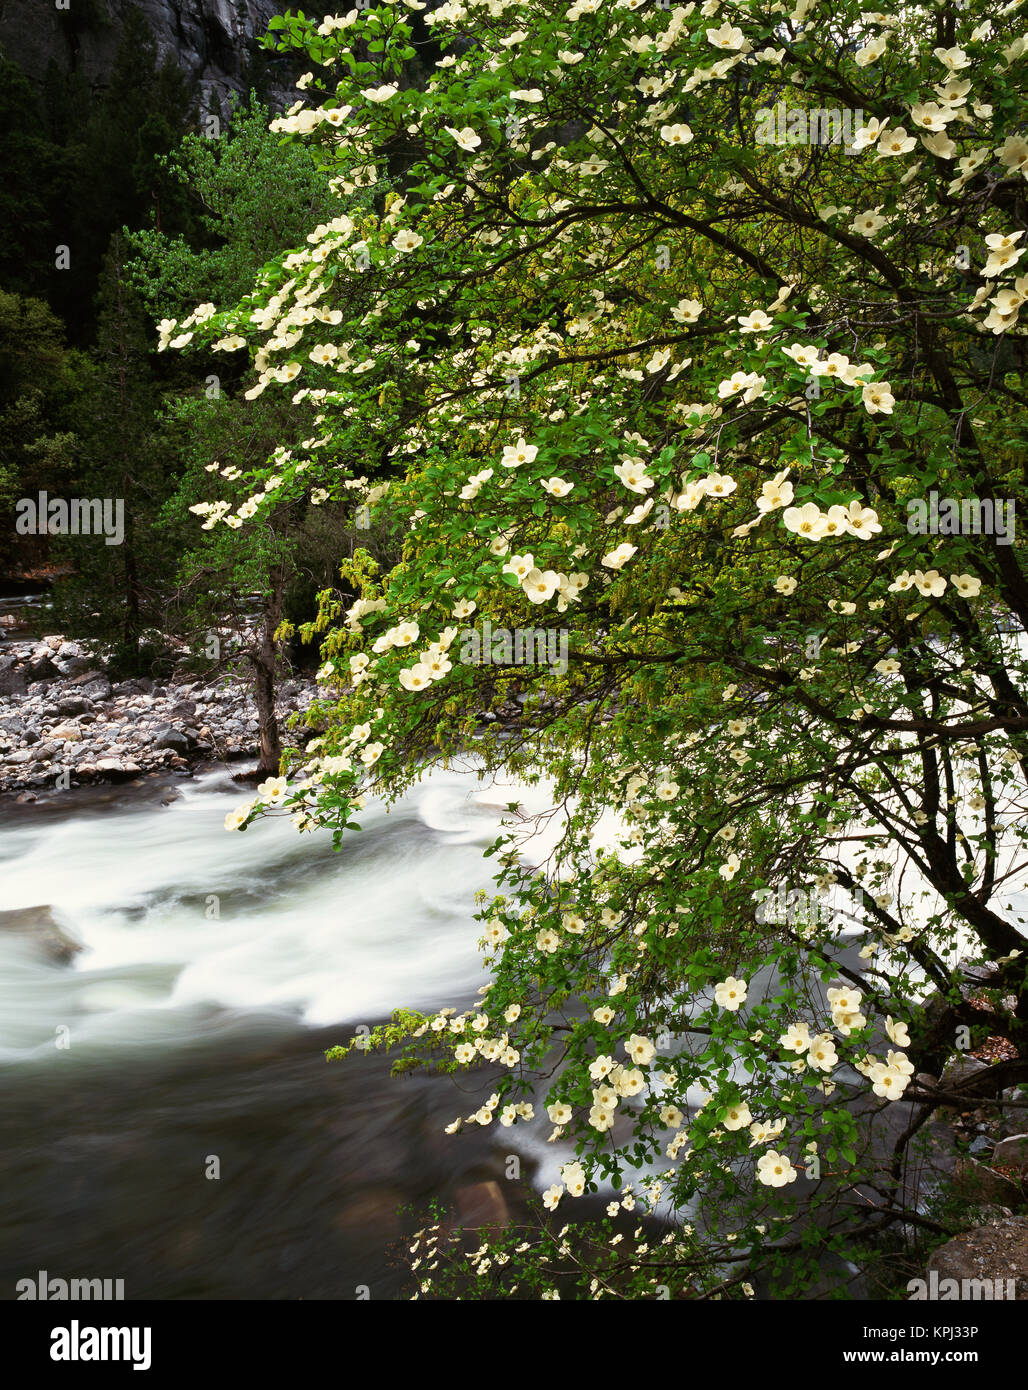 Dogwood Tree Vertical Nobody Stock Photos & Dogwood Tree Vertical ...